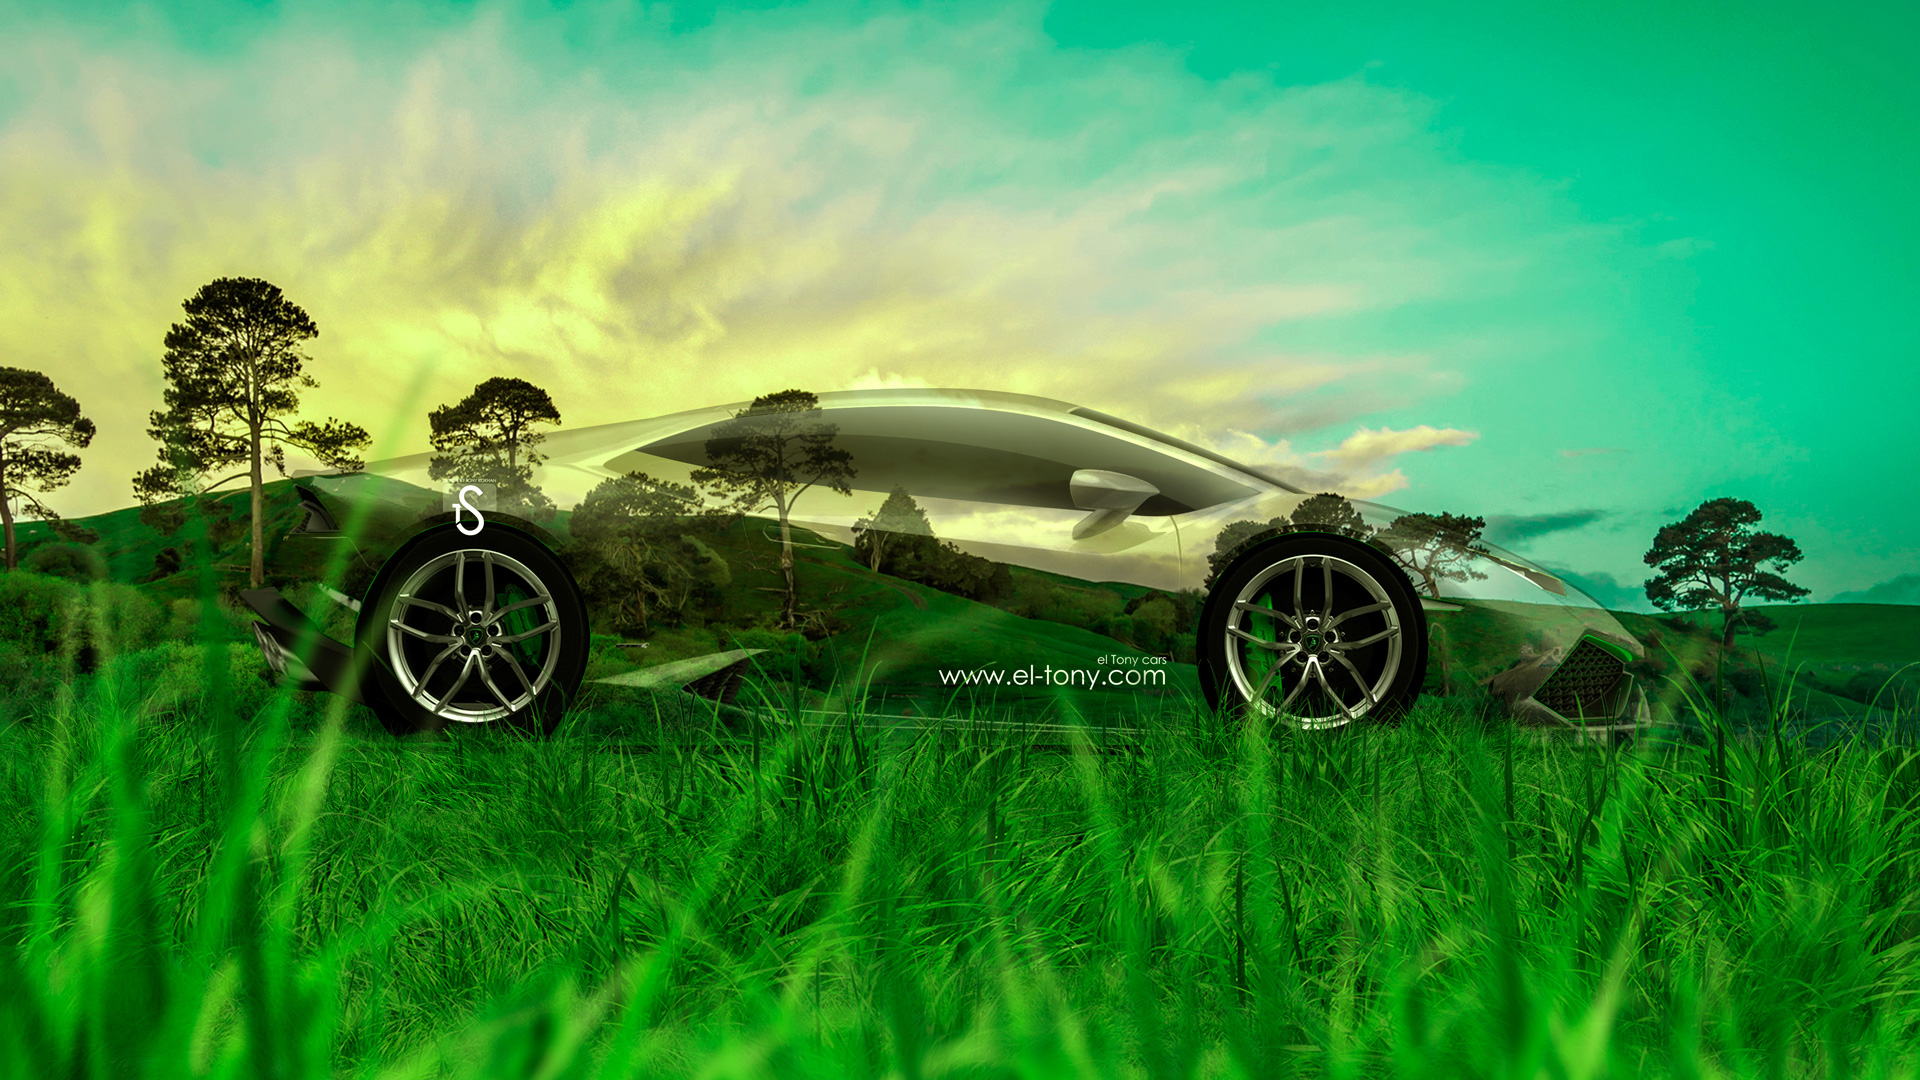 Genial Lamborghini Huracan Crystal Nature Car 2014 HD Wallpapers